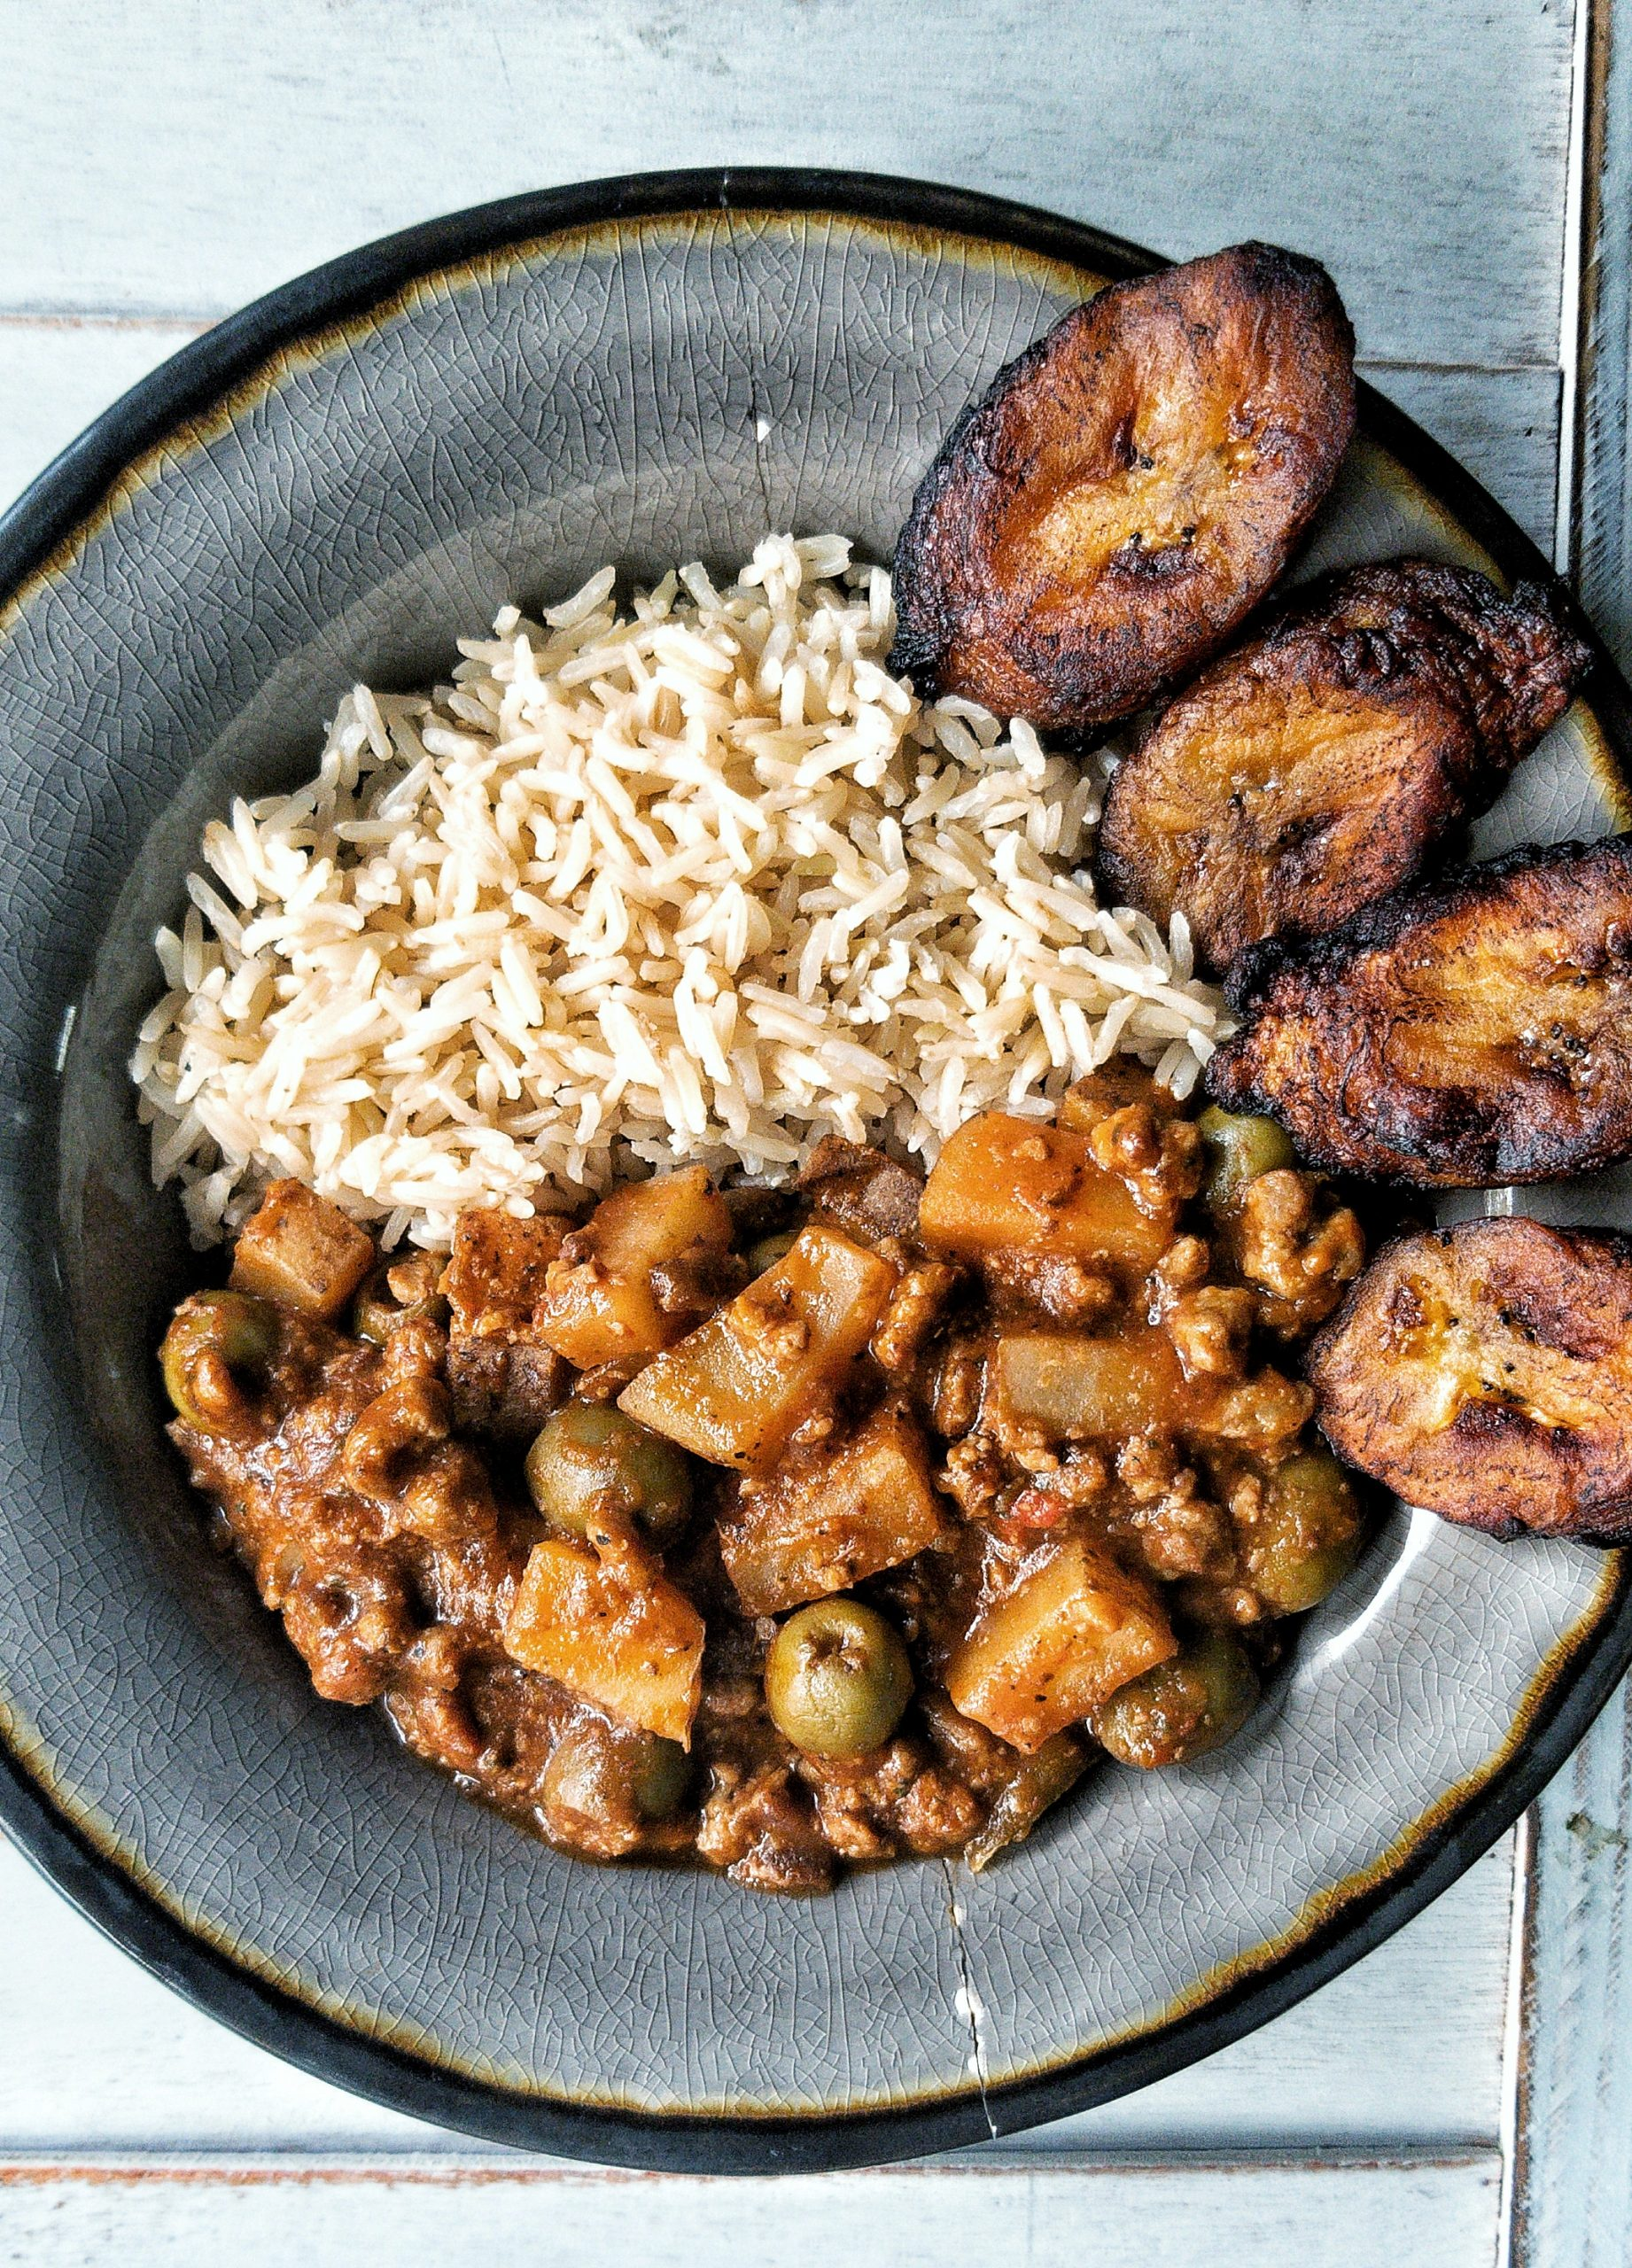 Vegan picadillo in a bowl with brown rice and sweet, fried plantains